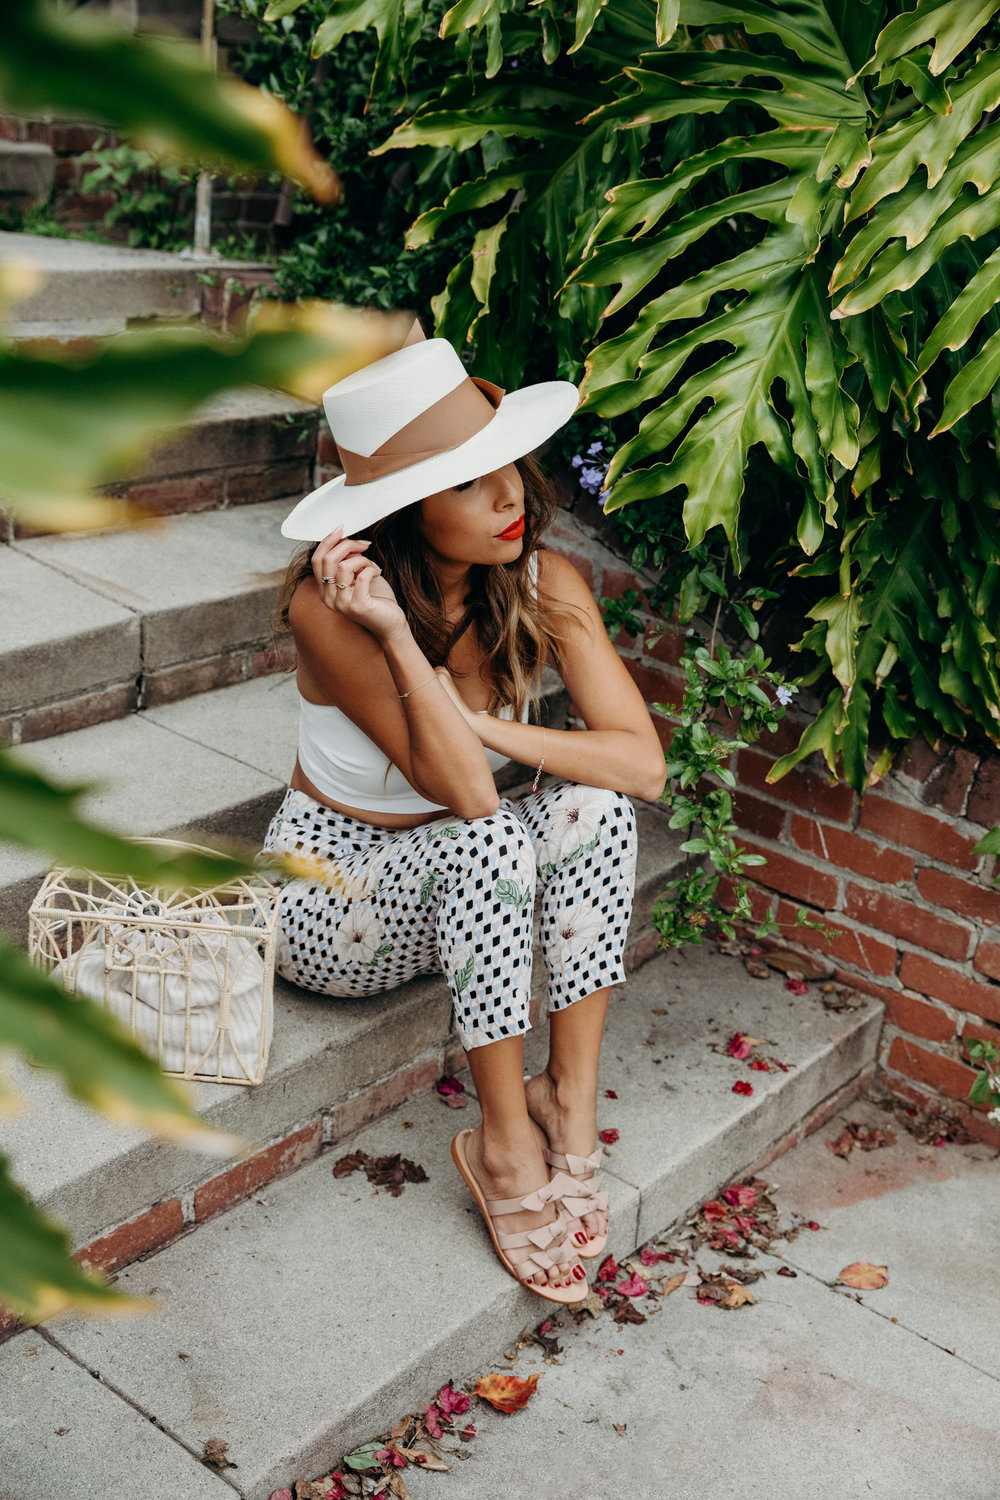 Honeymoon outfit ideas - Belize + Mexico